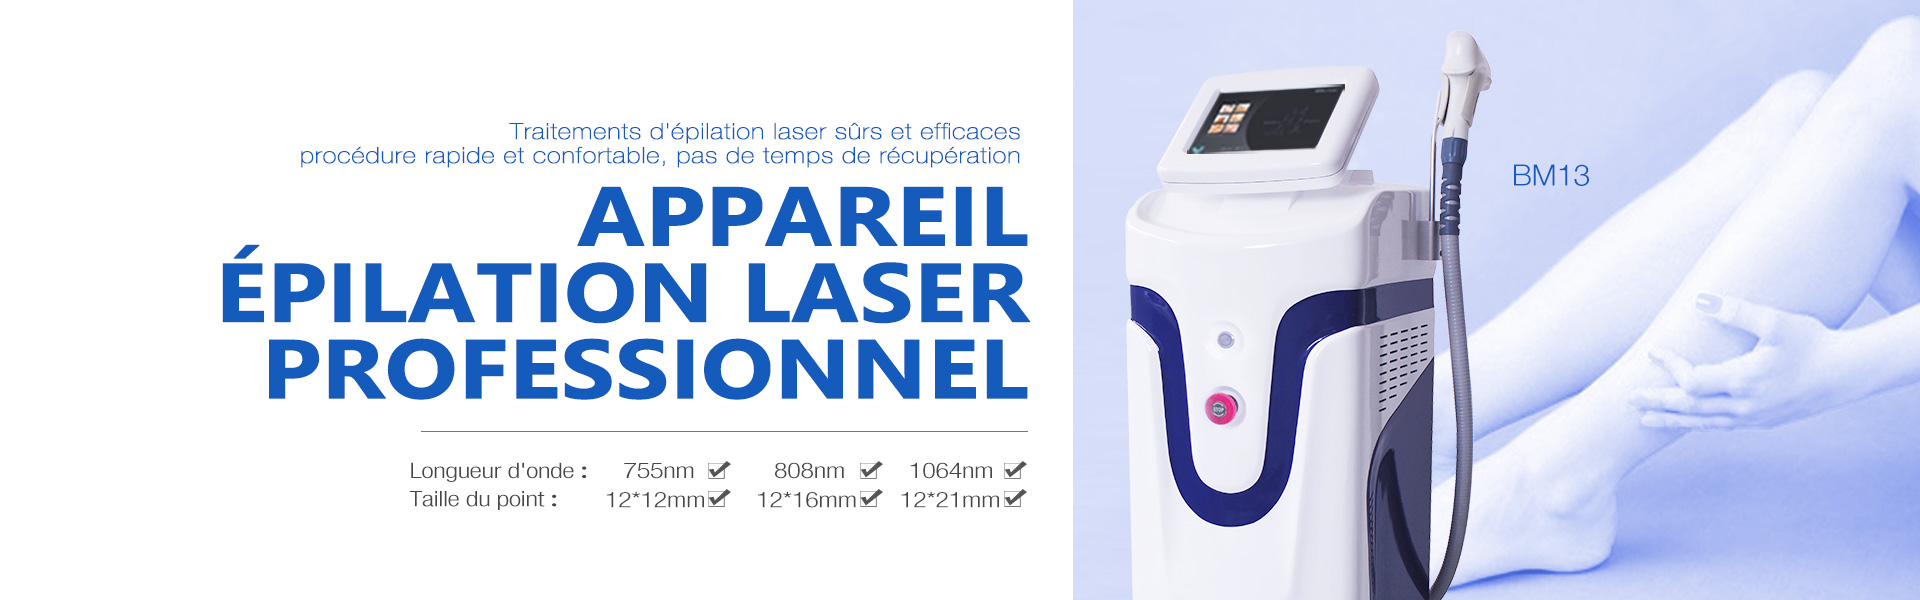 Machine d'épilation de laser de la diode 808nm BM13 11.16